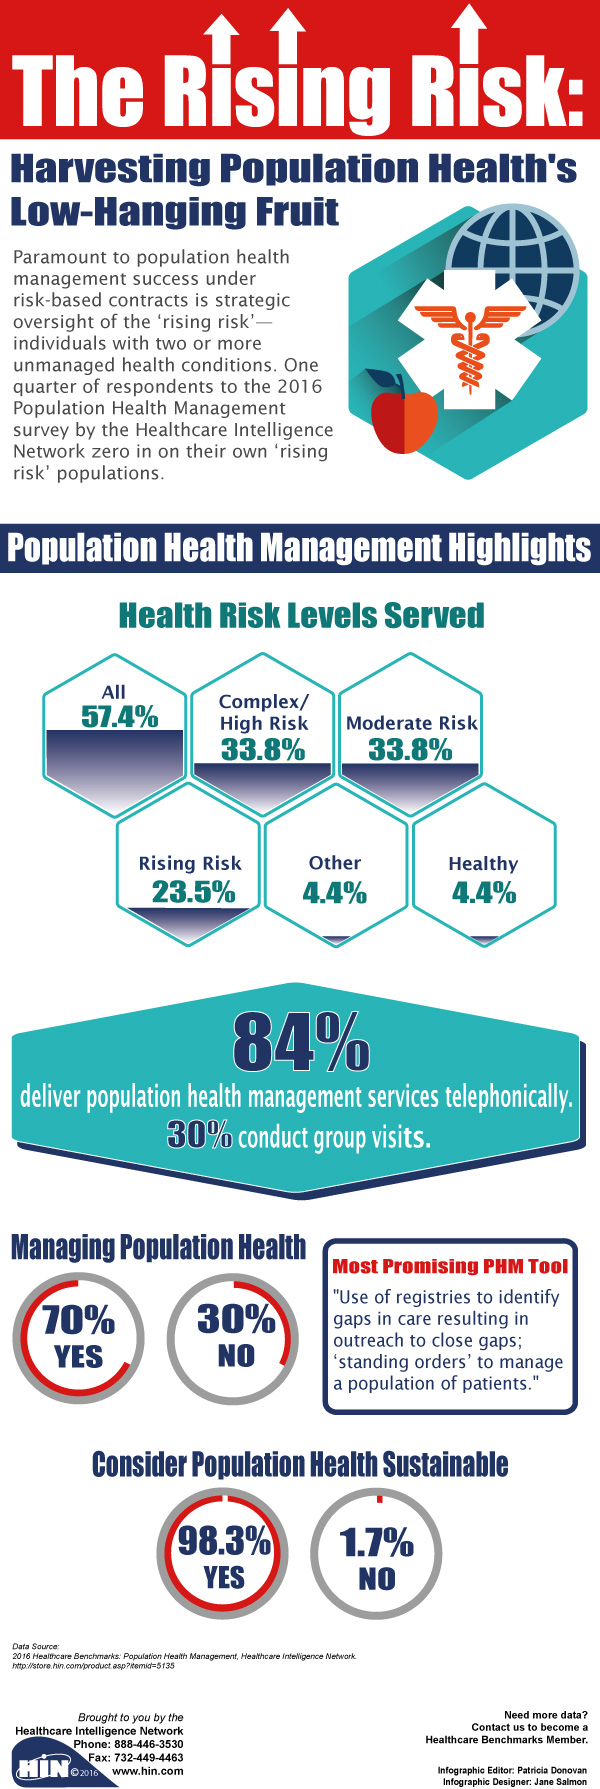 The Rising Risk: Harvesting Population Health's Low-Hanging Fruit